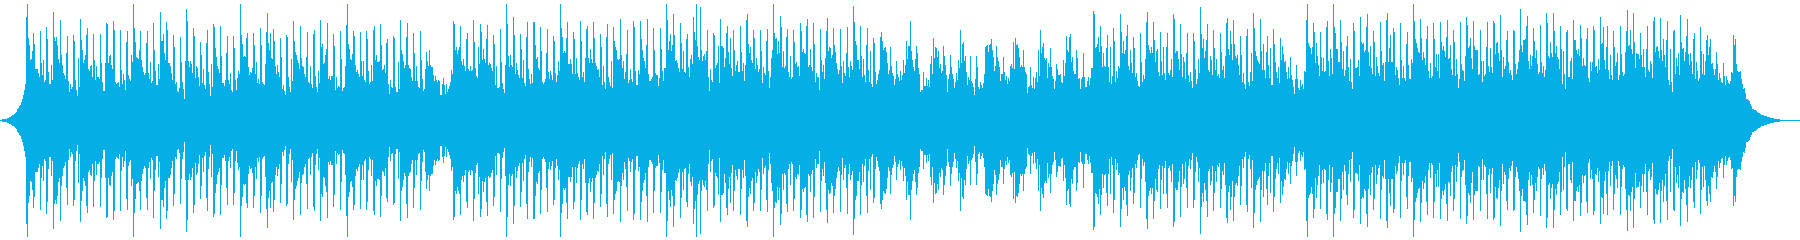 Soft interview's reproduced waveform